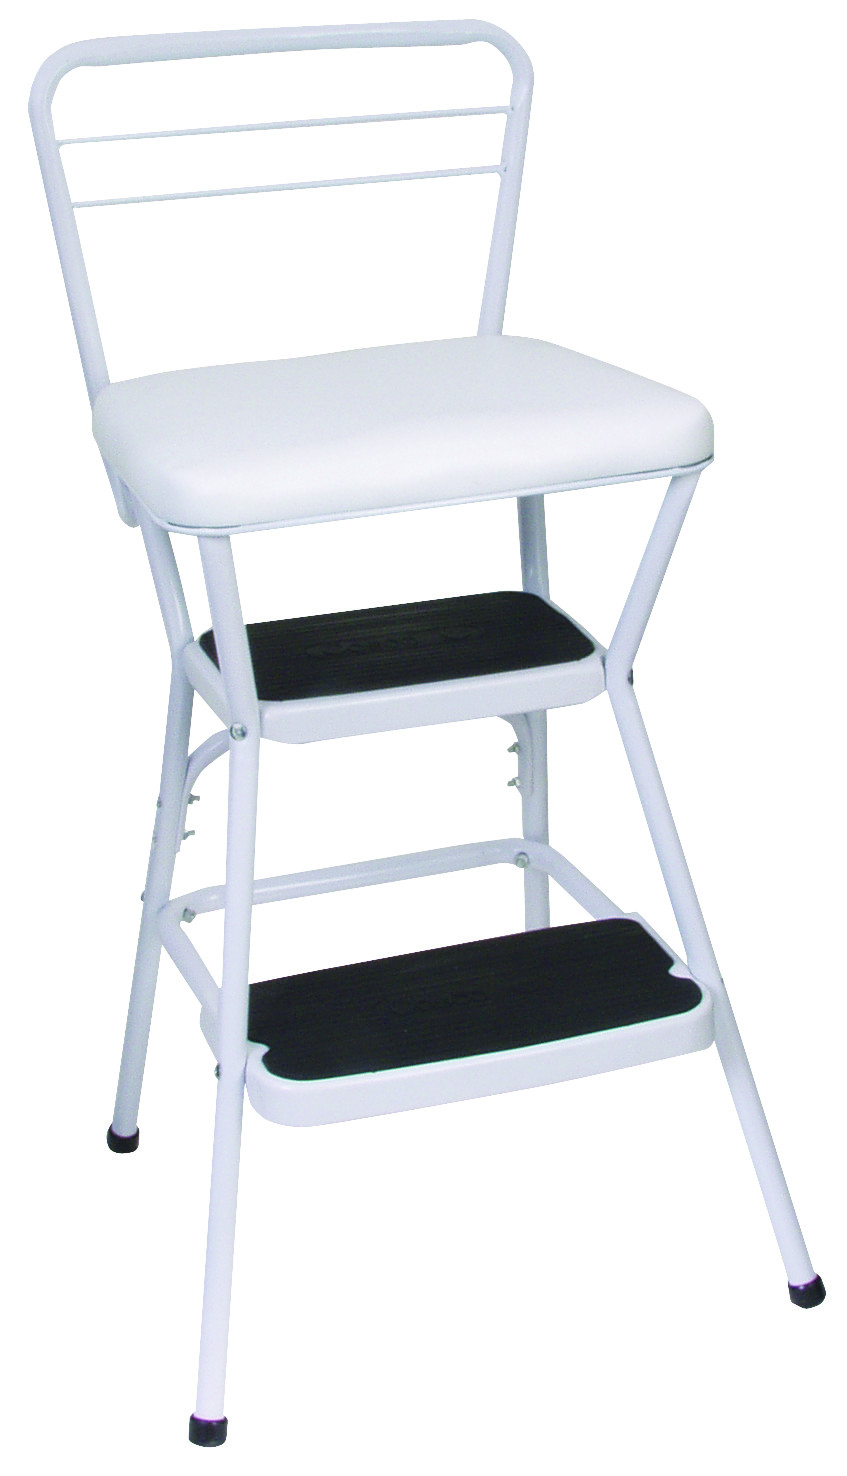 Charmant Cosco 11130WHT Stool Counter Chair/Step Wht. Tap To Expand